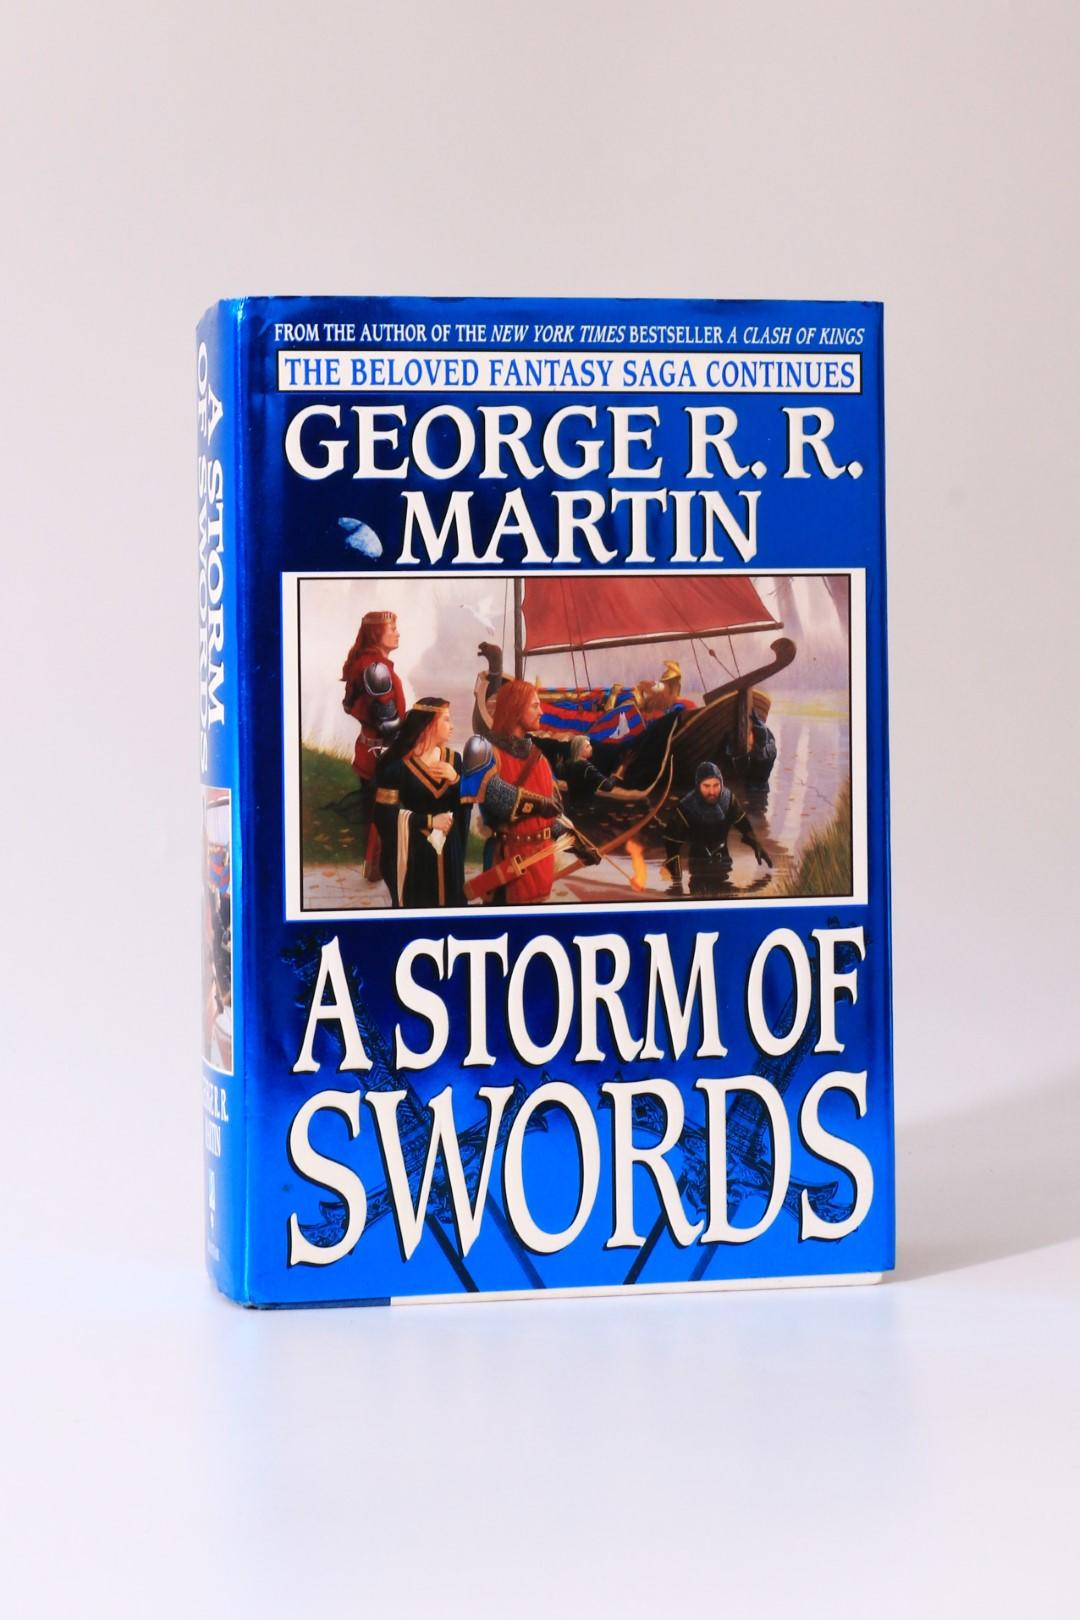 George R.R. Martin - A Storm of Swords - Bantam / Spectre, 2000, First Edition.